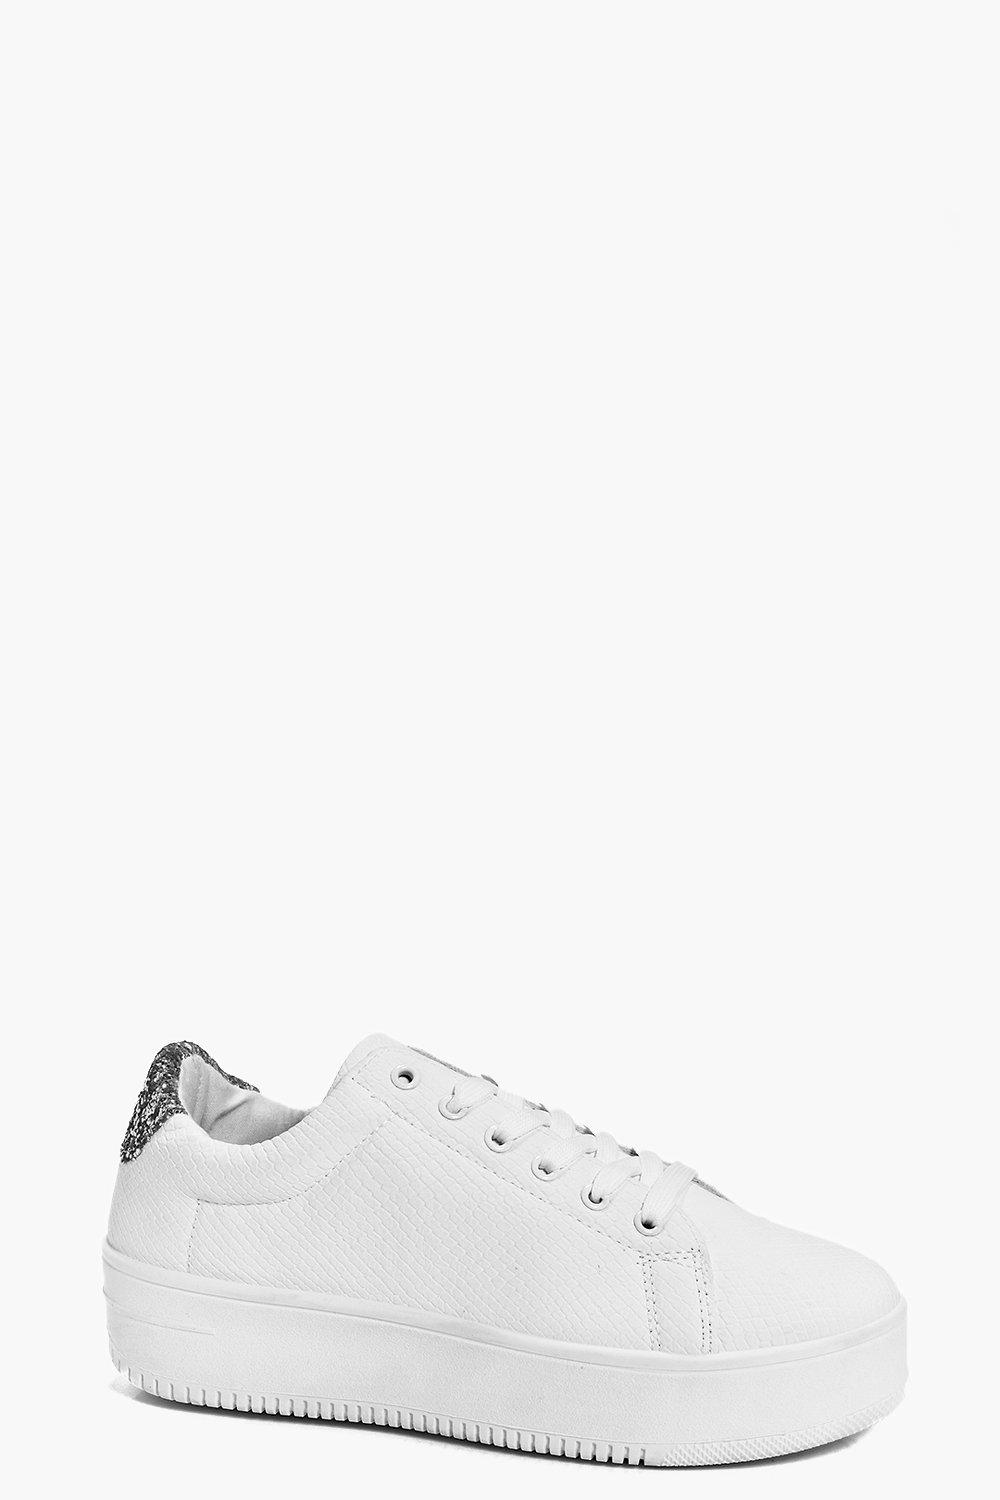 Snake Print And Glitter Lace Up Trainer white